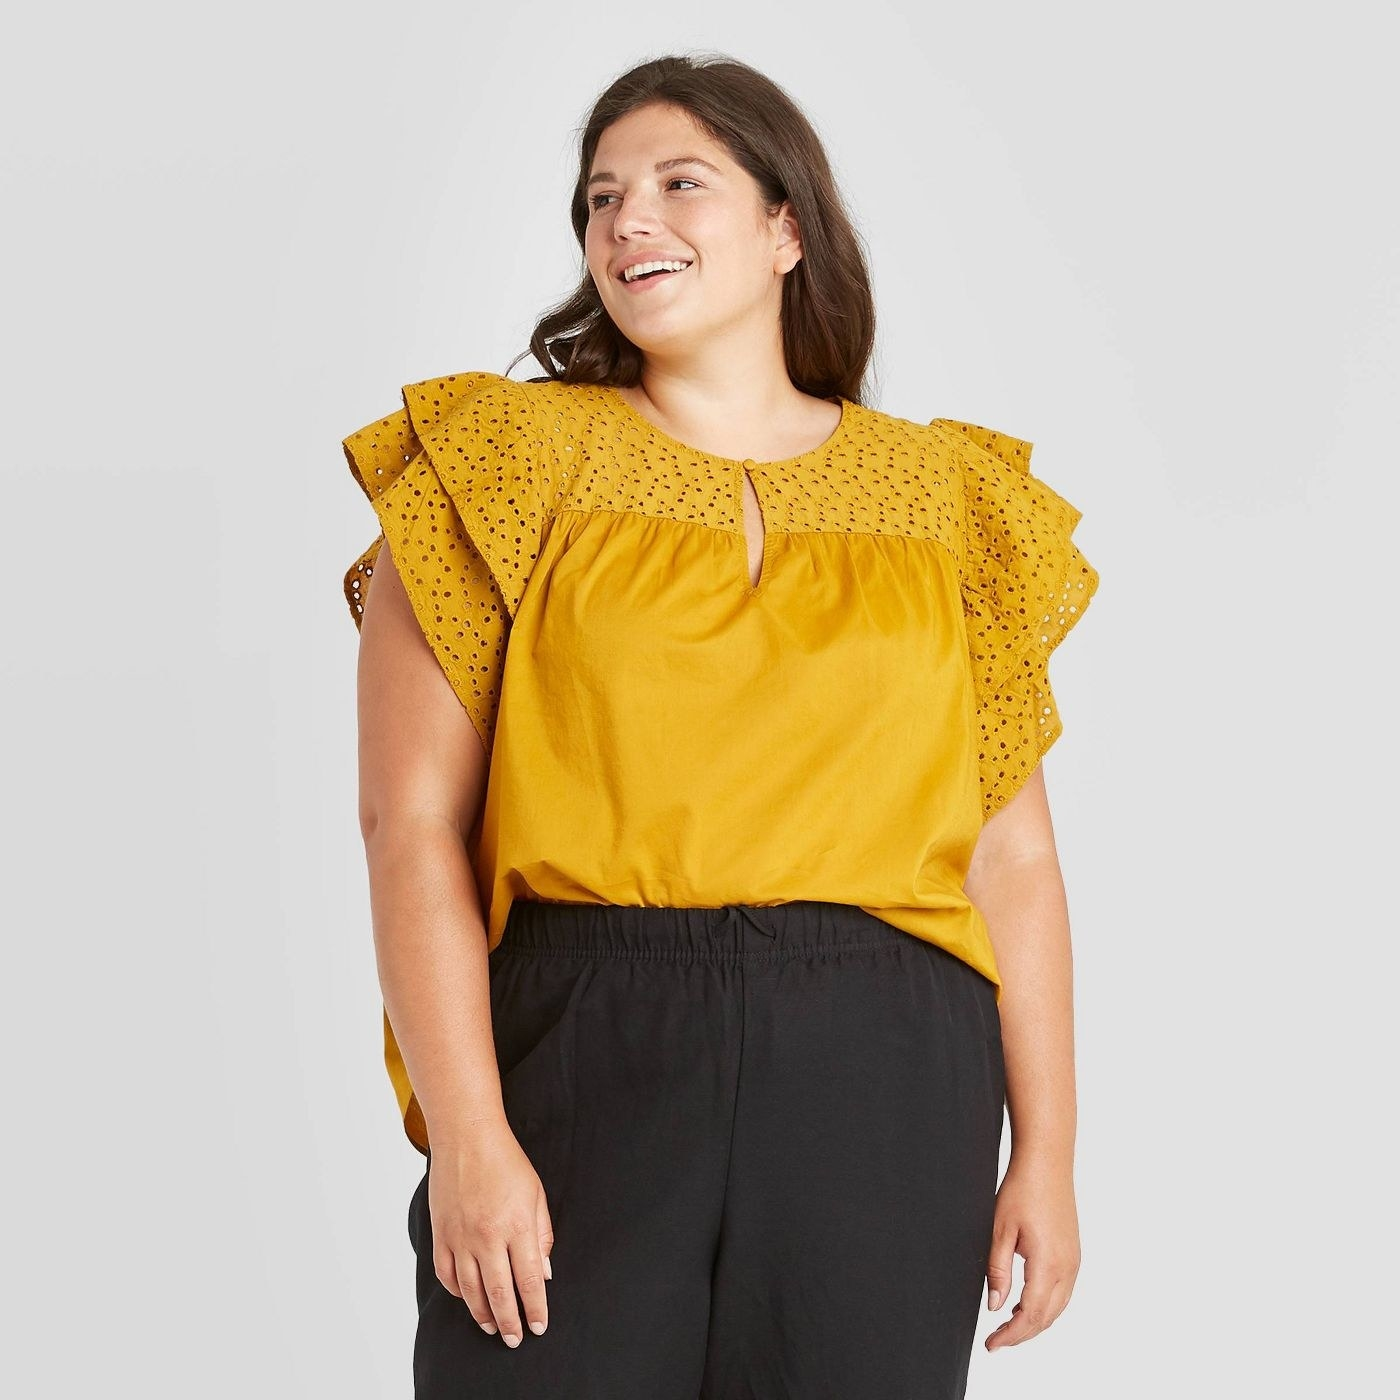 Model wearing the yellow top